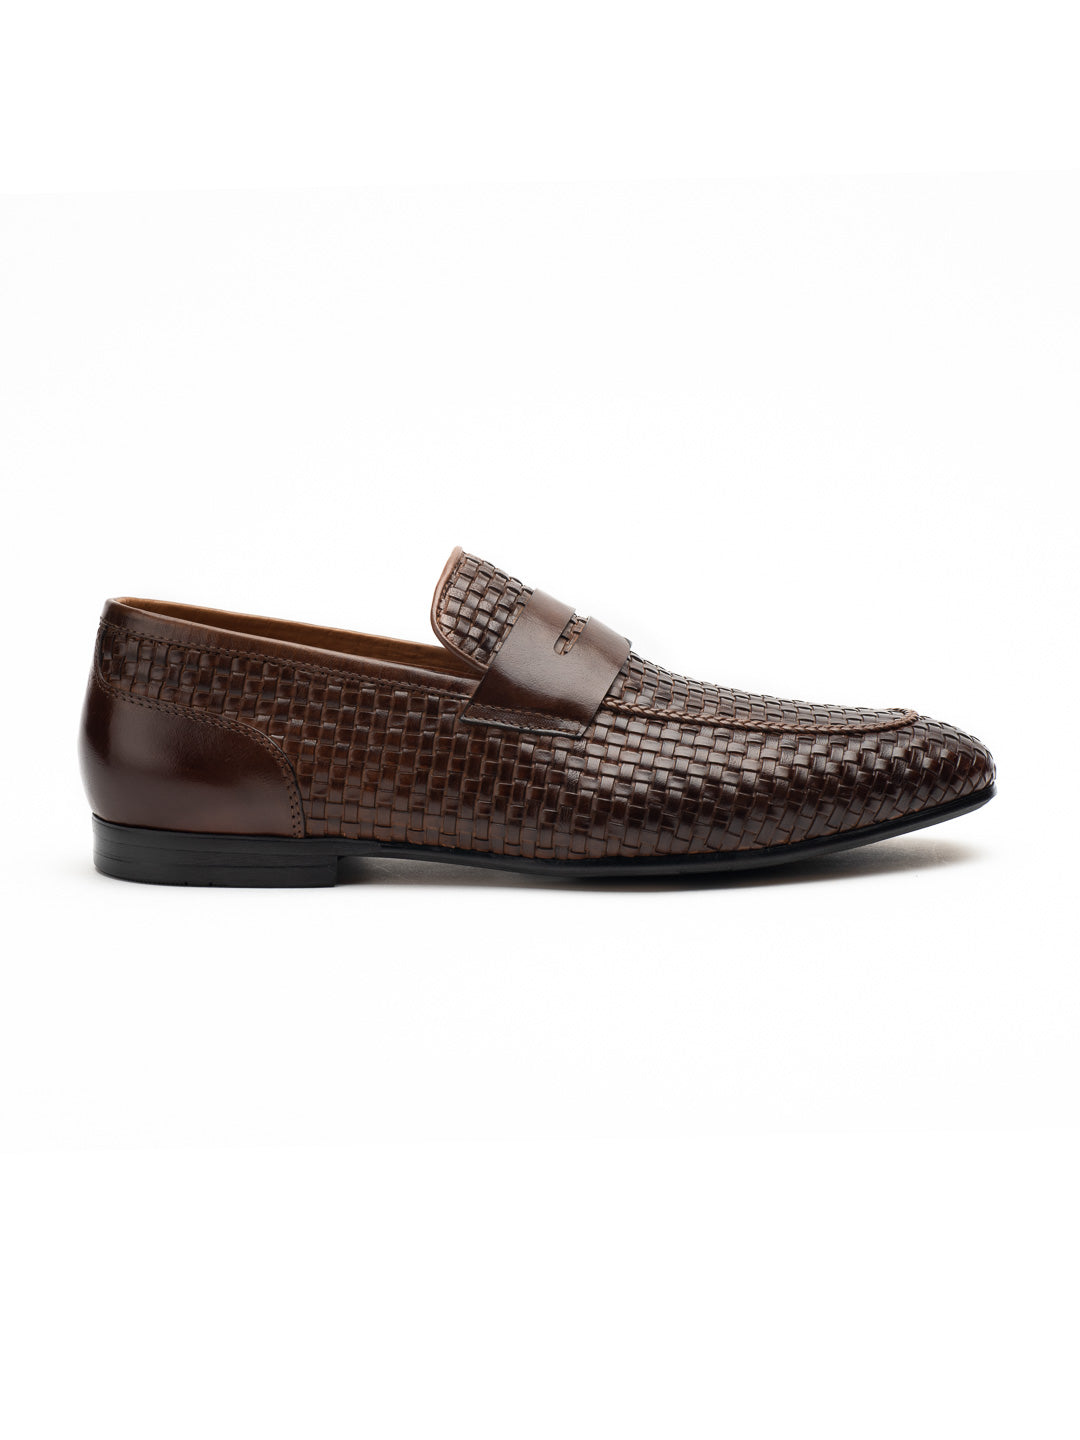 Textured Dark Brown Penny Loafers